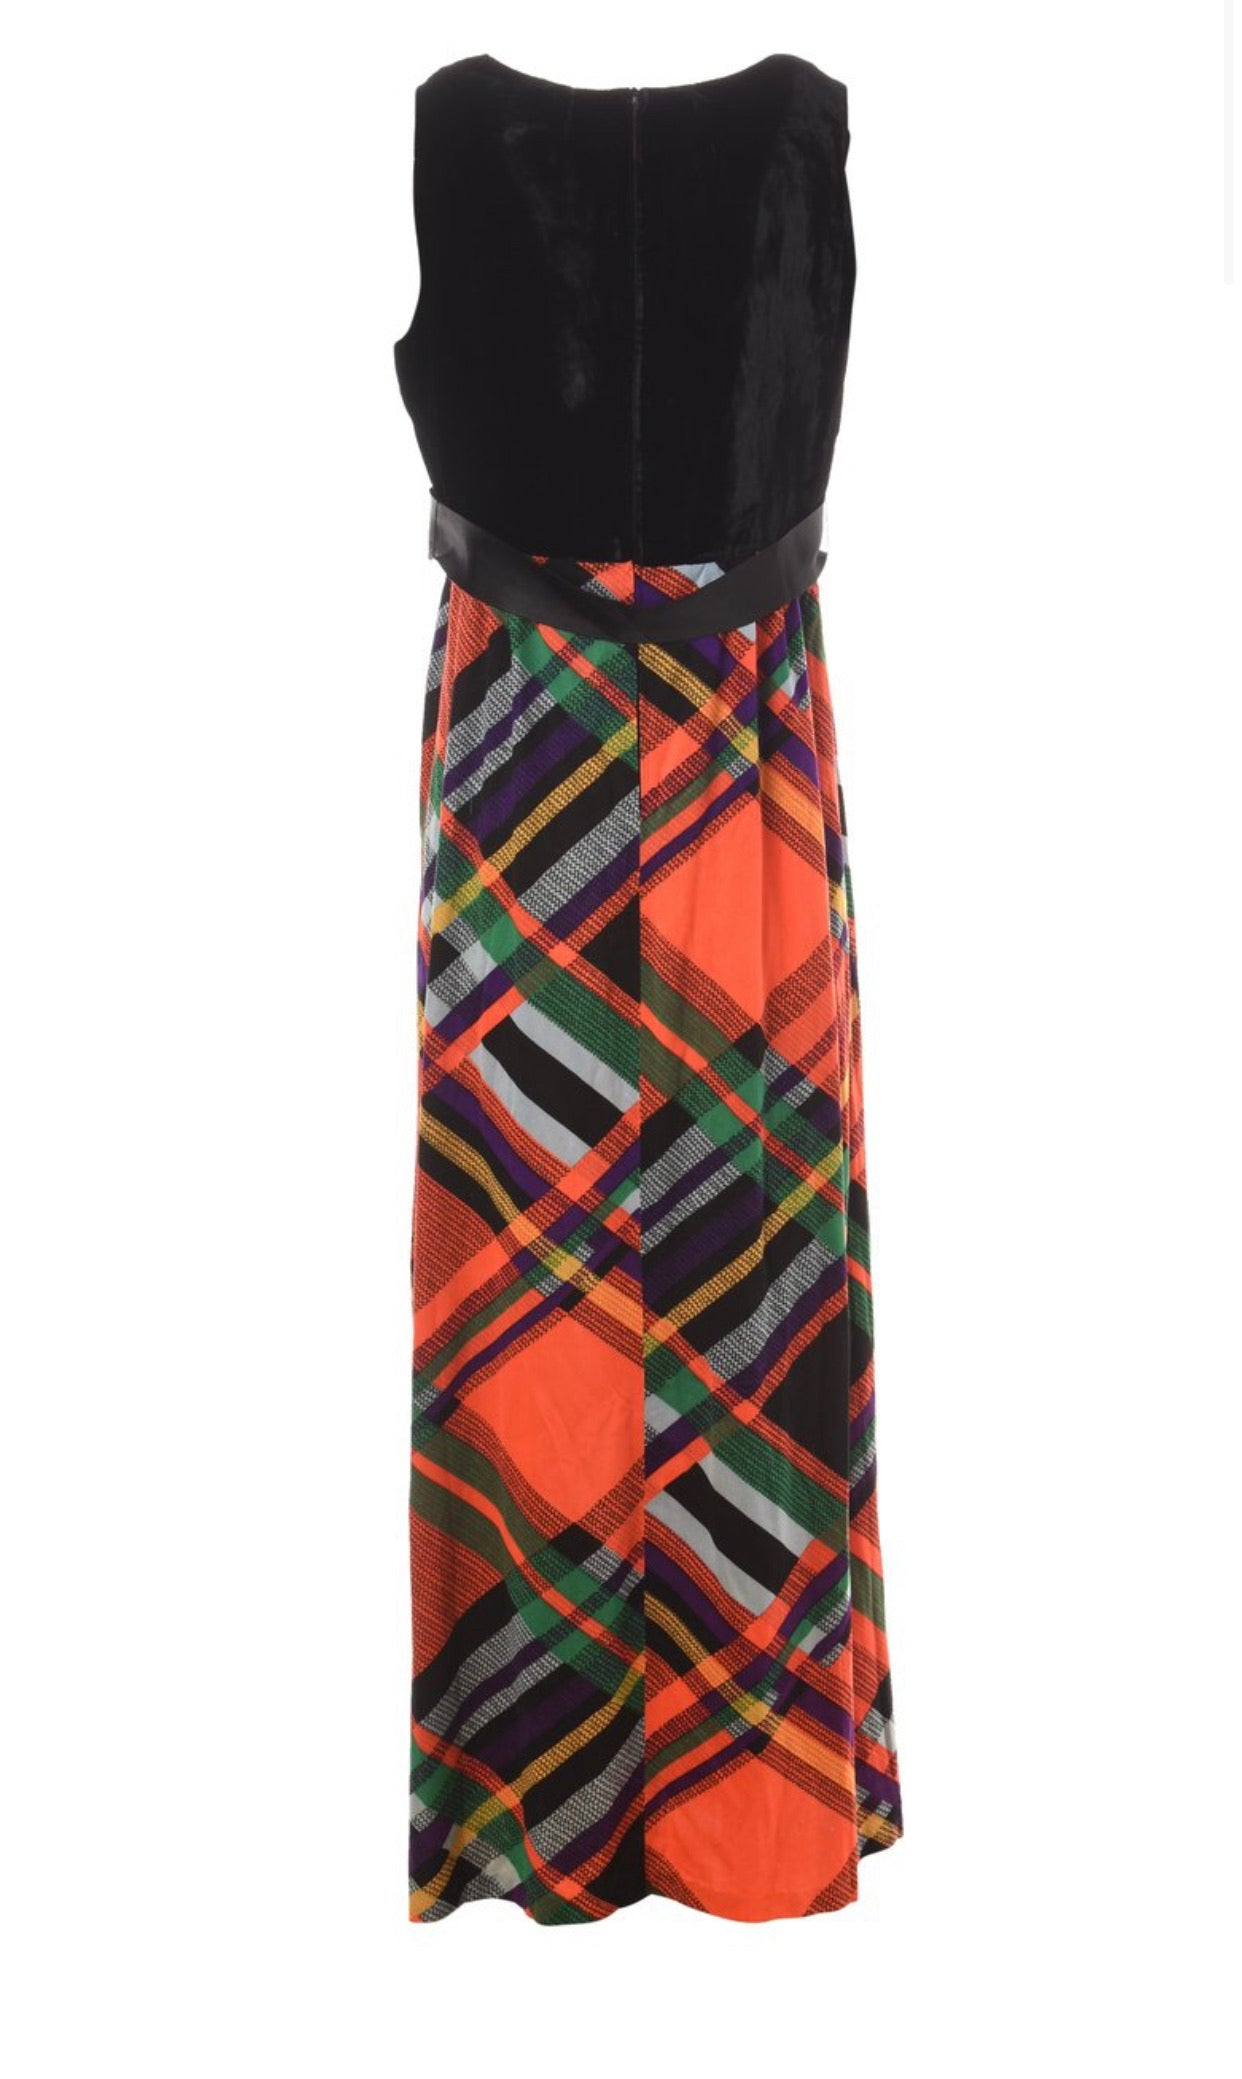 The Highlands Sleeveless Plaid Dress